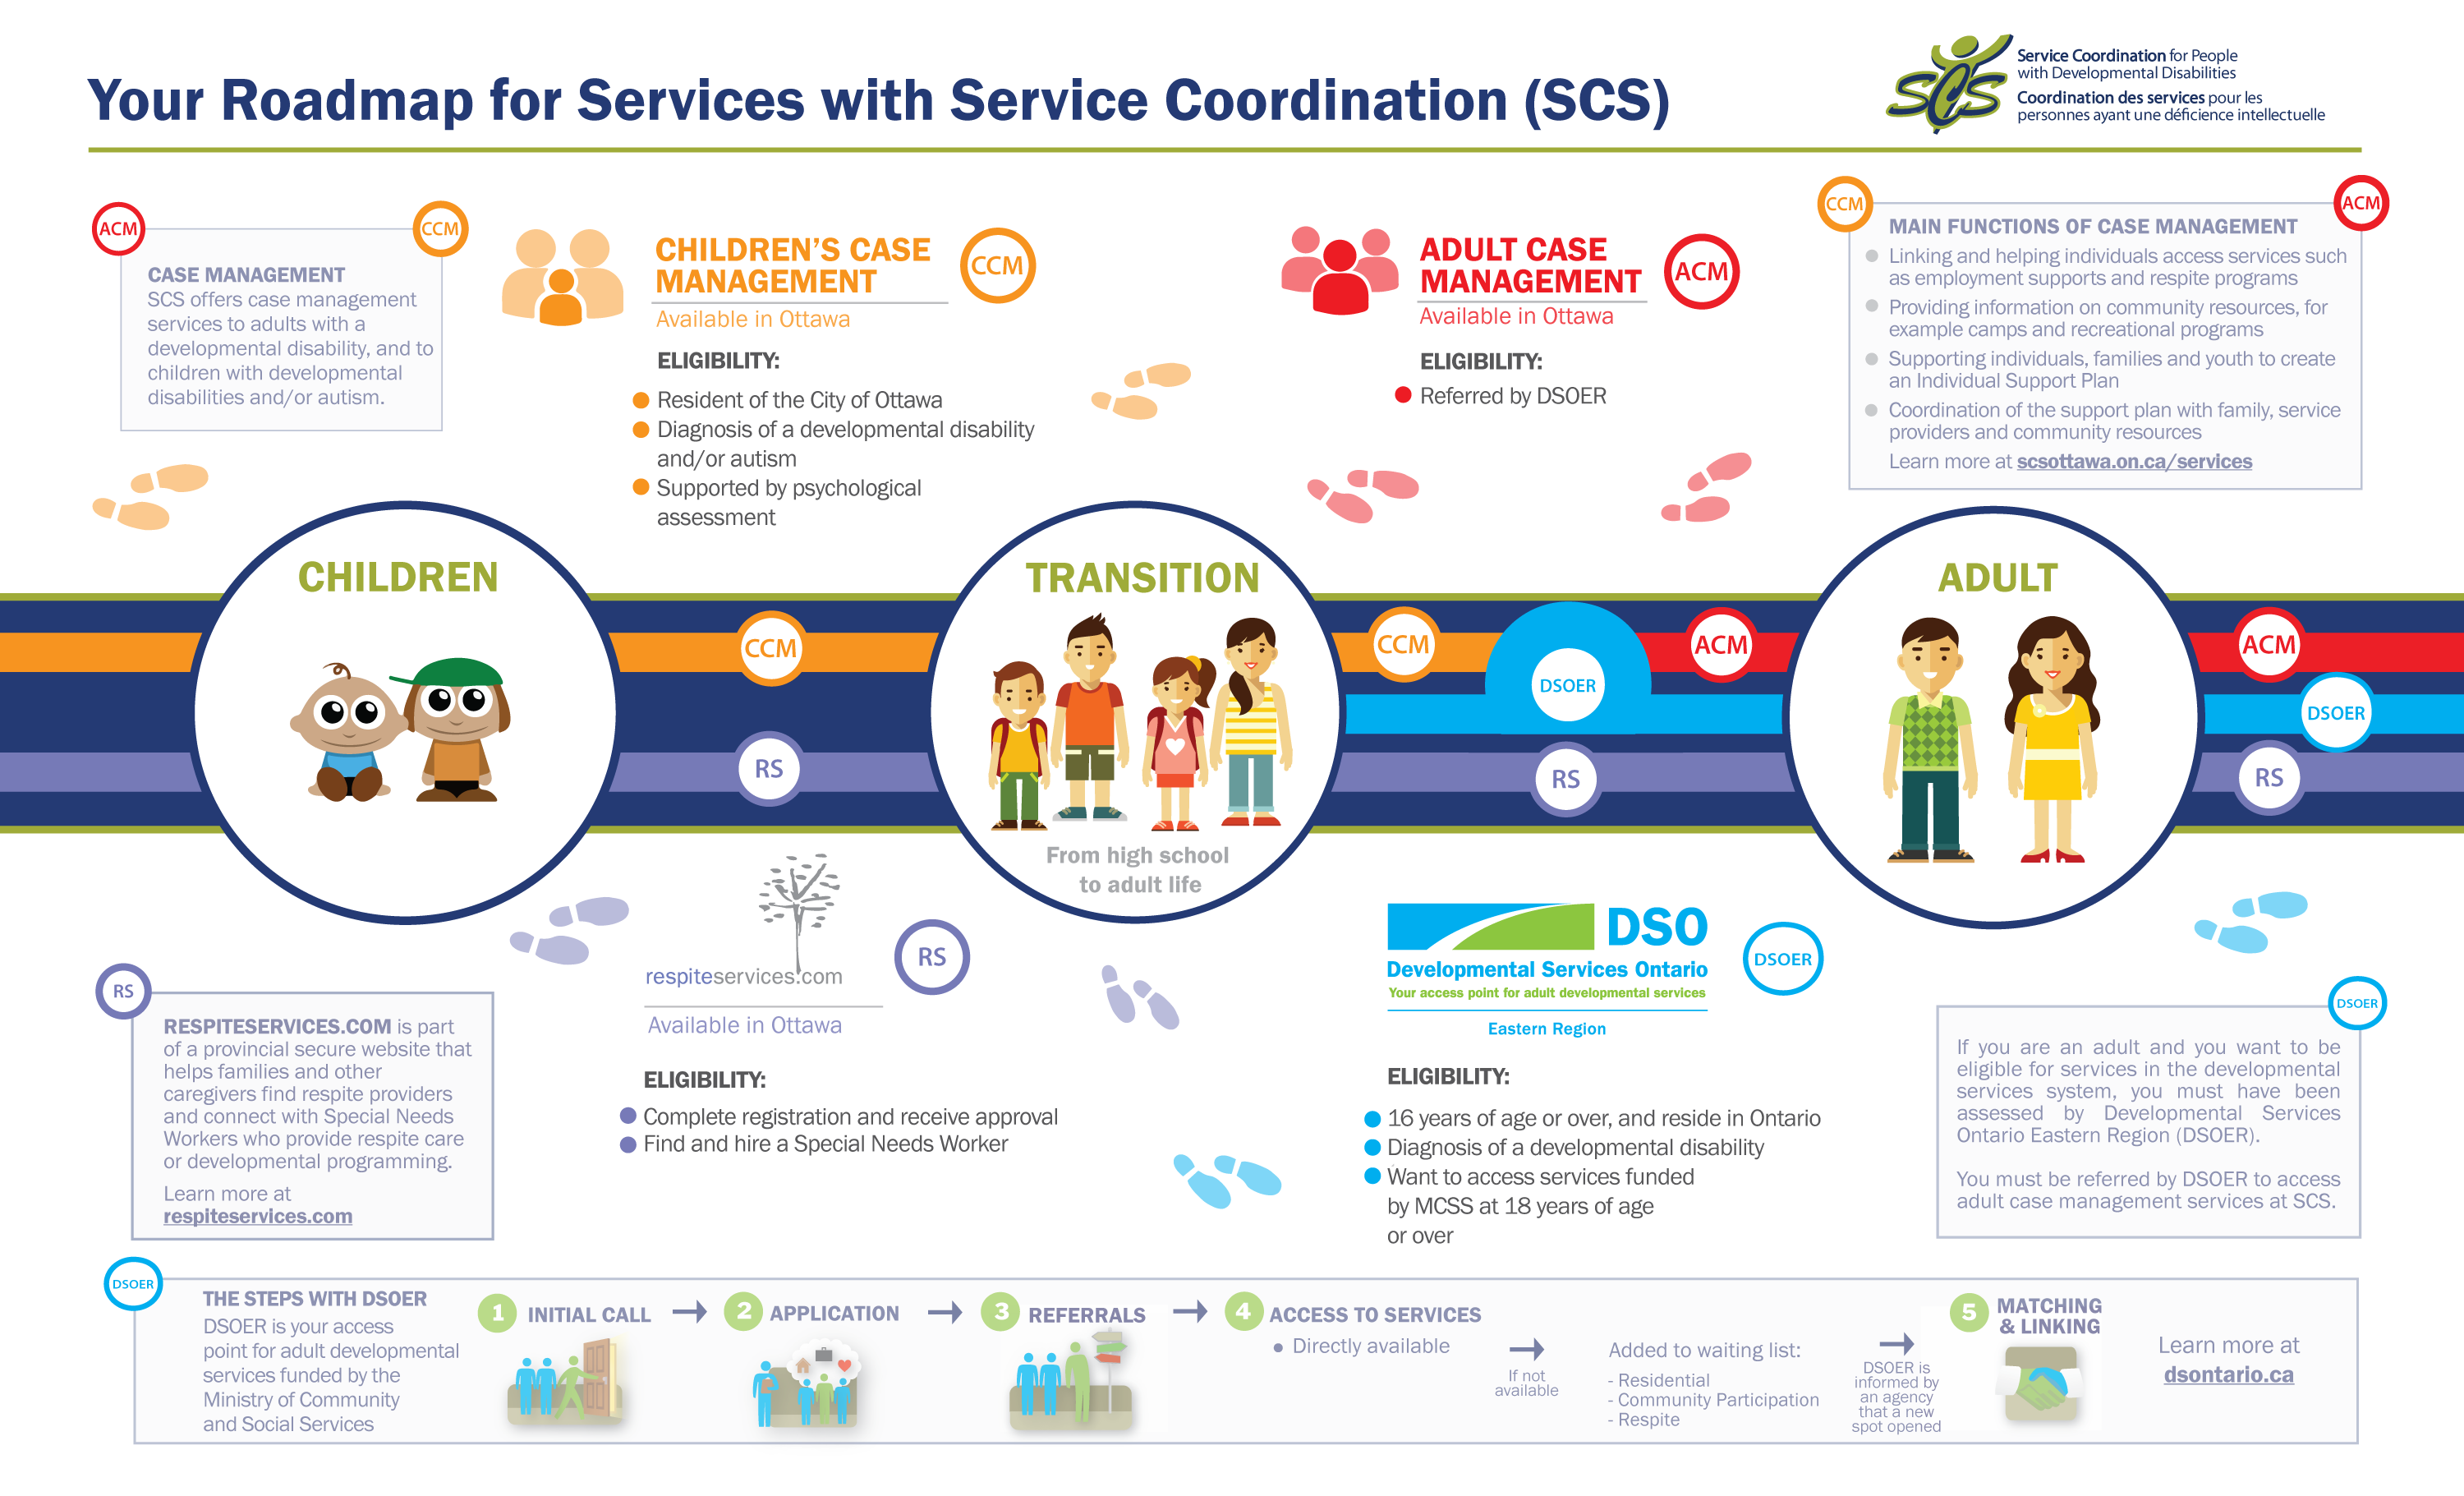 Your Roadmap for Services with Service Coordination